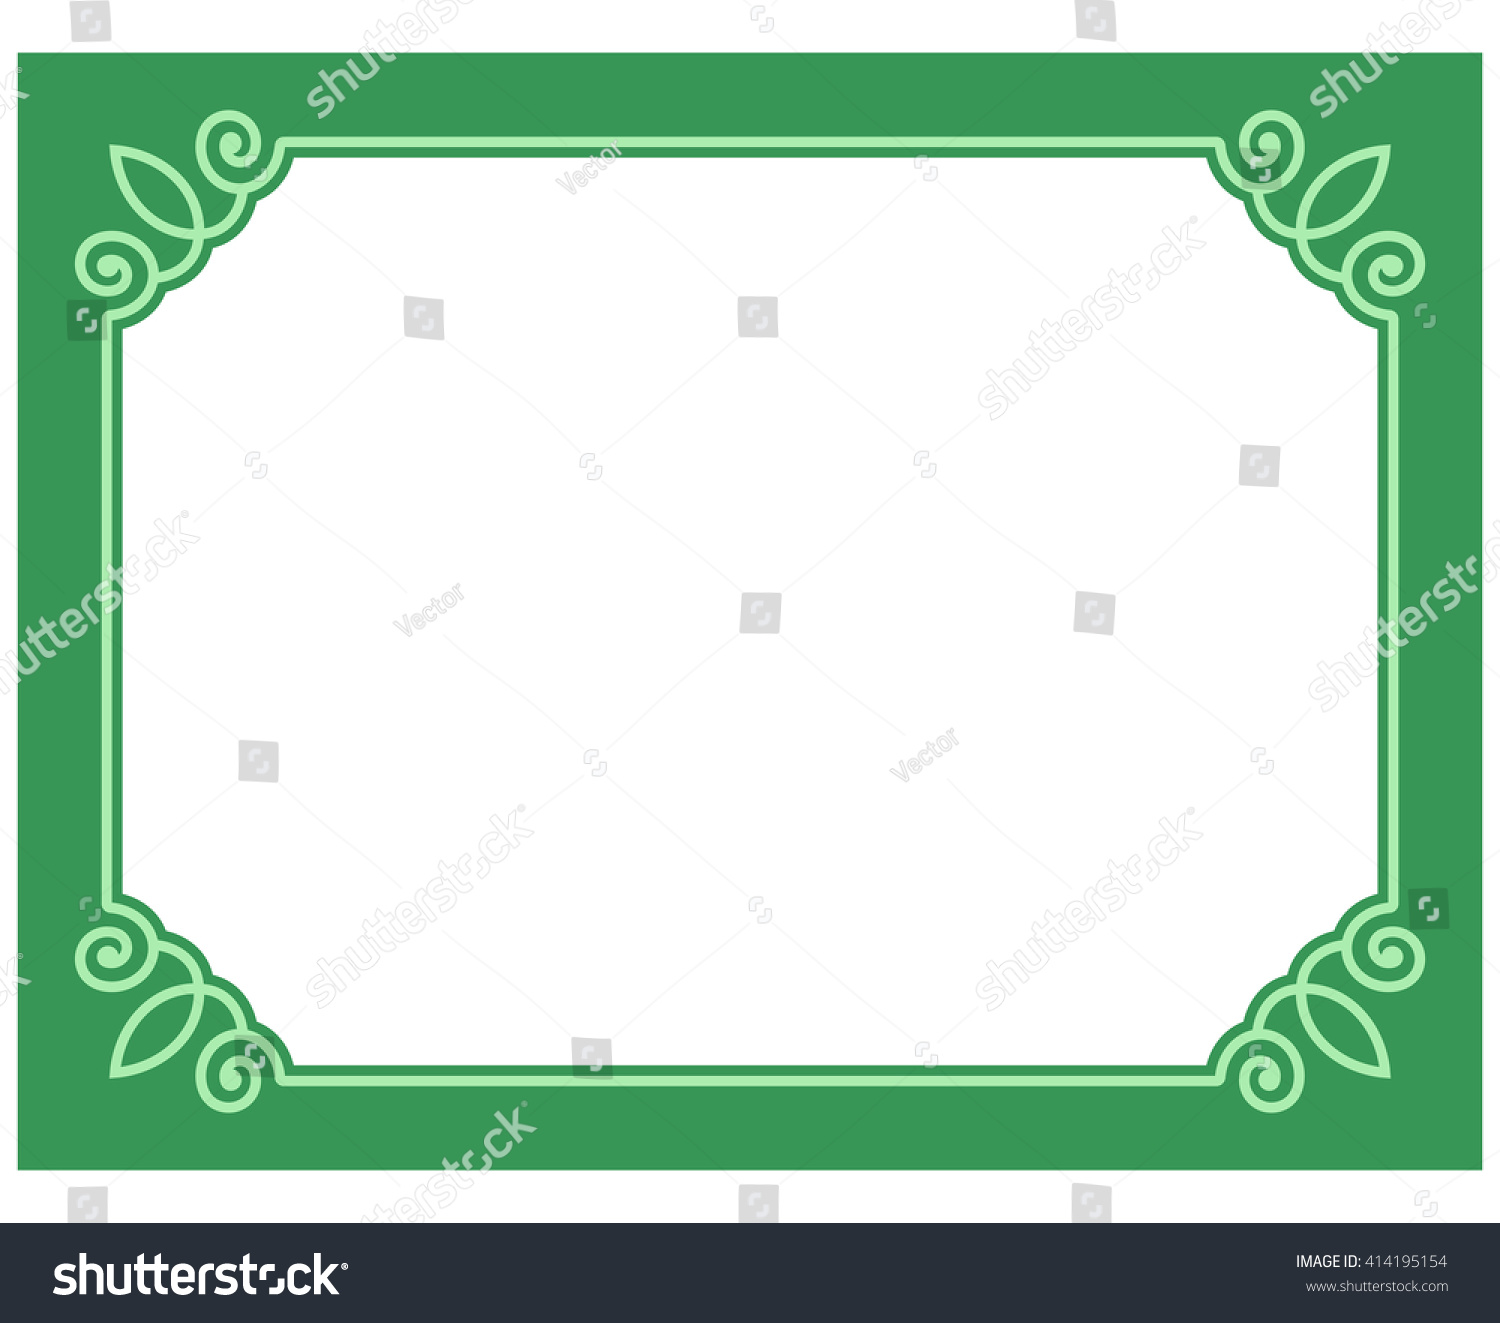 green border frame deco vector art stock vector 414195154 shutterstock. Black Bedroom Furniture Sets. Home Design Ideas